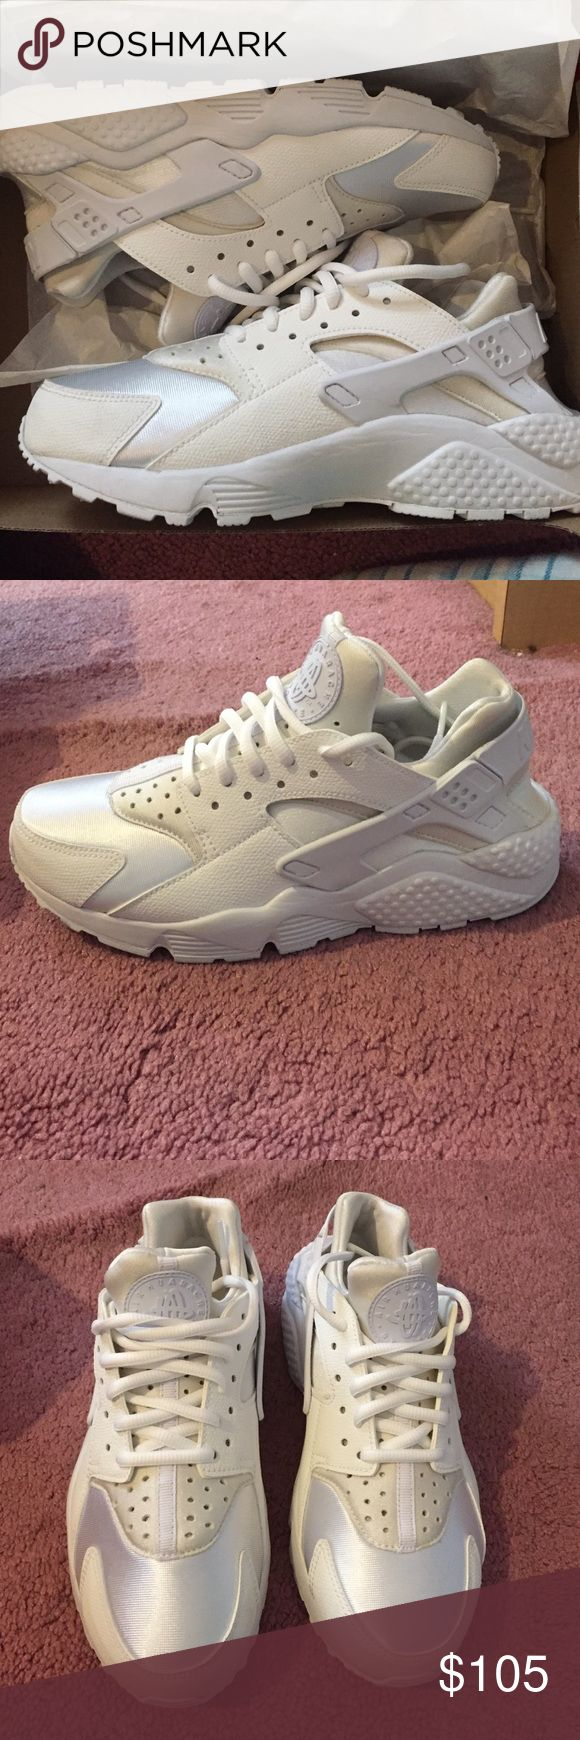 Women's all white huaraches size 7 Brand new look . Worn once . No stains. Nike Shoes Sneakers